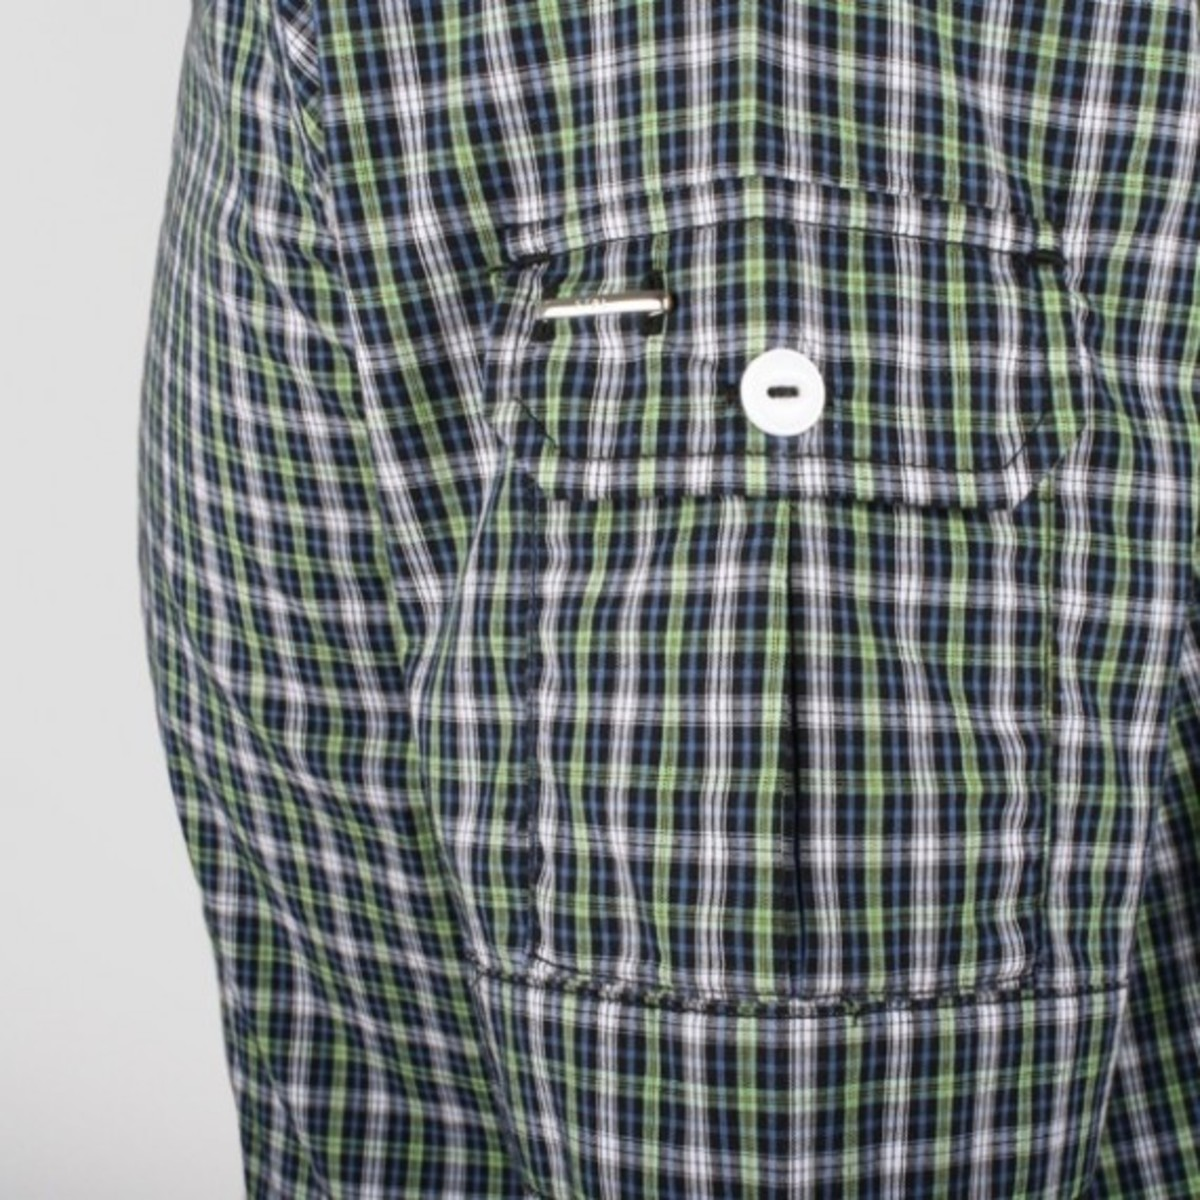 STPL-West-Short-Sleeve-Button-Shirt-SP11_3